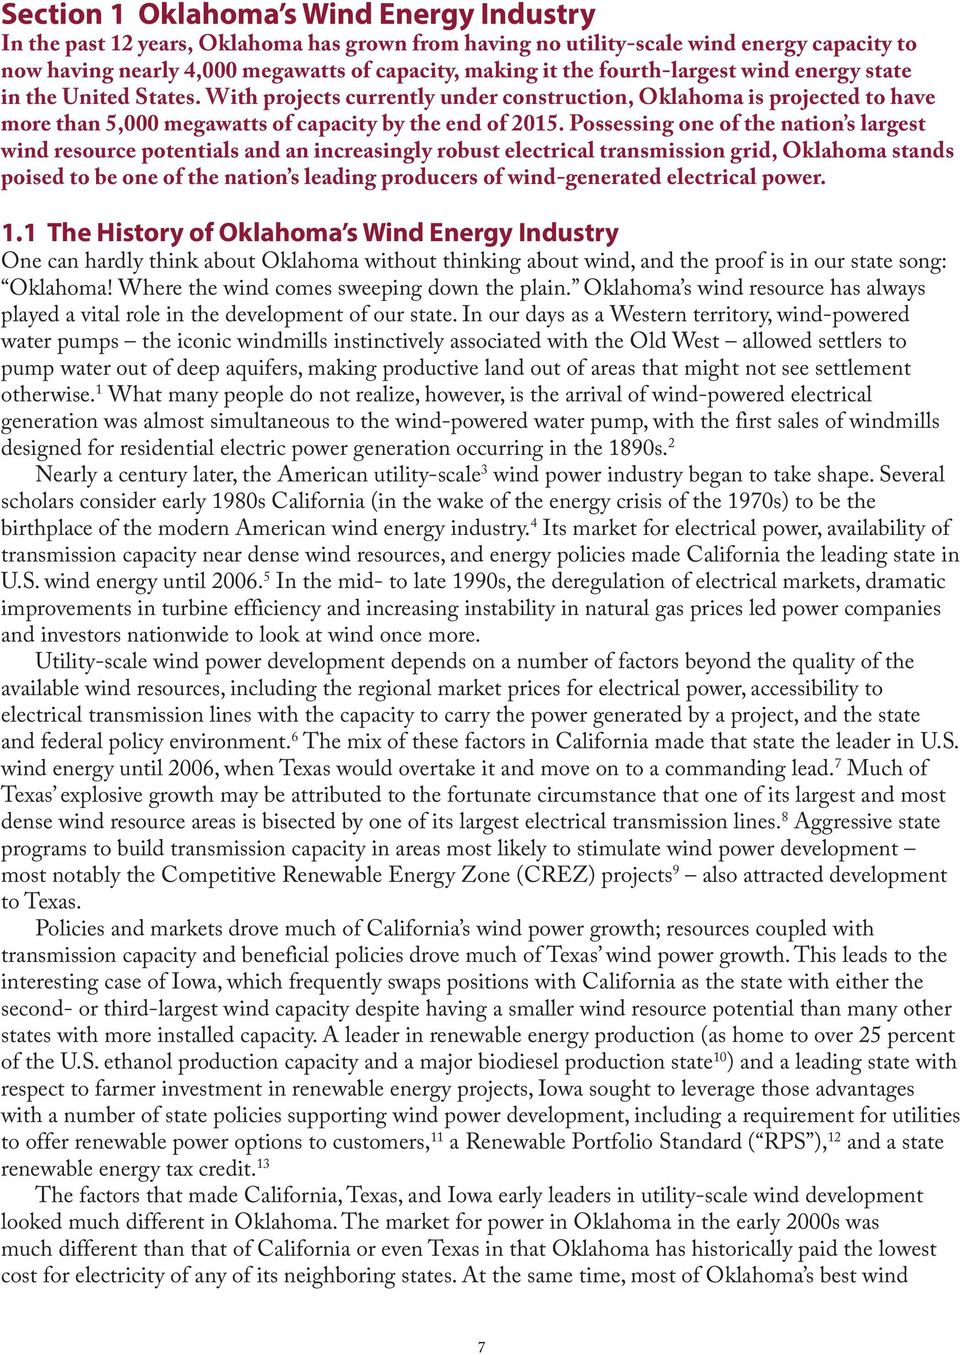 Possessing one of the nation s largest wind resource potentials and an increasingly robust electrical transmission grid, Oklahoma stands poised to be one of the nation s leading producers of